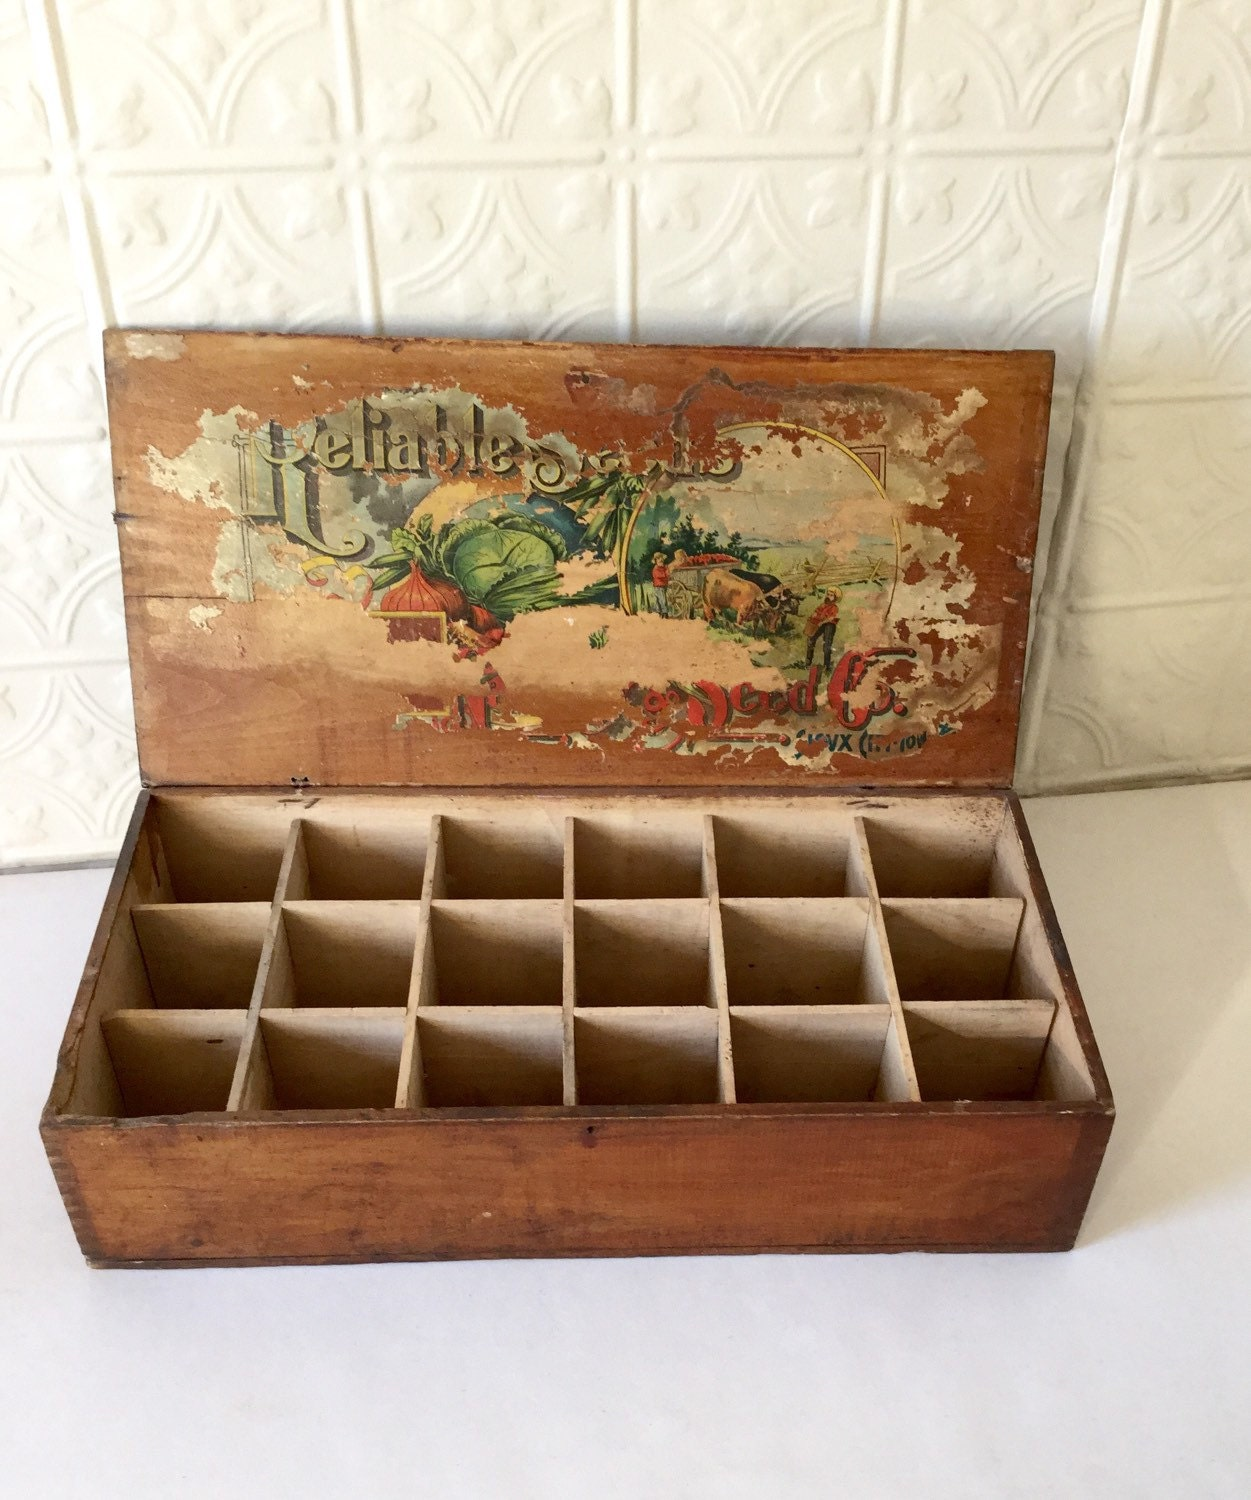 Antique seed box sioux city iowa divided wood store display for Craft stores in sioux city iowa